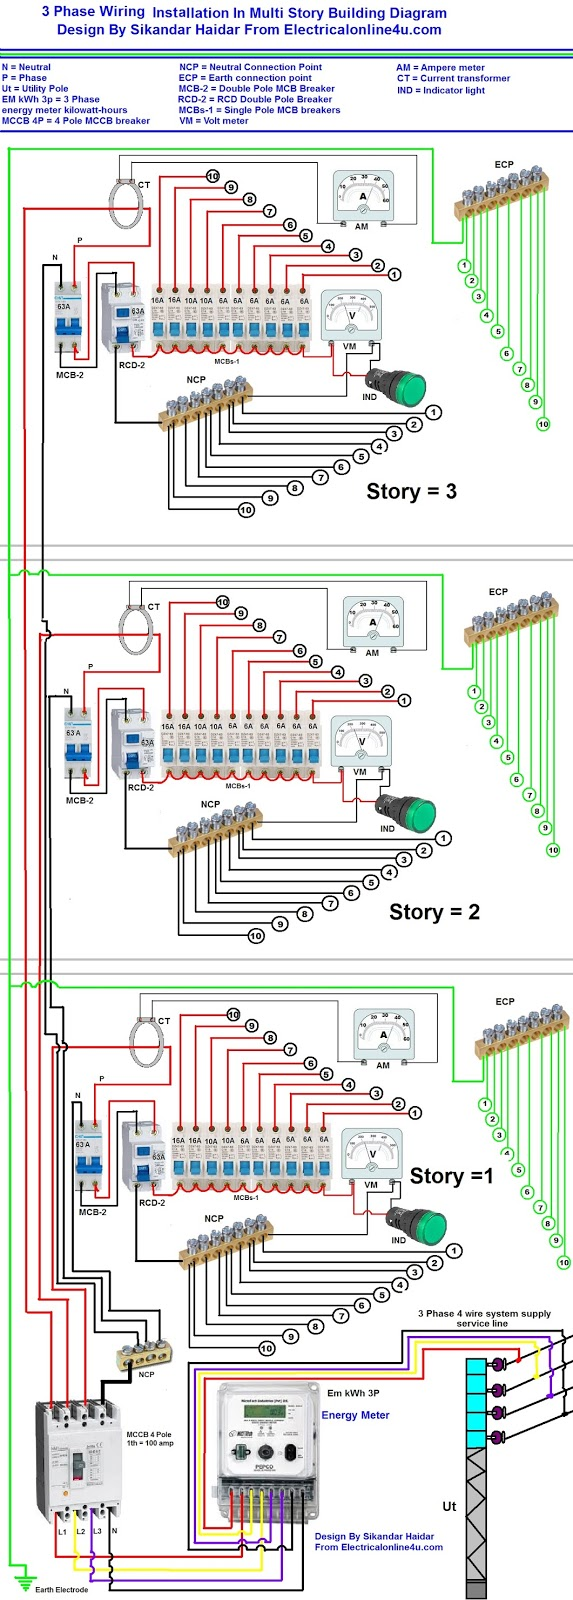 3 Phase Distribution Board Diagram For Multi Story House Building